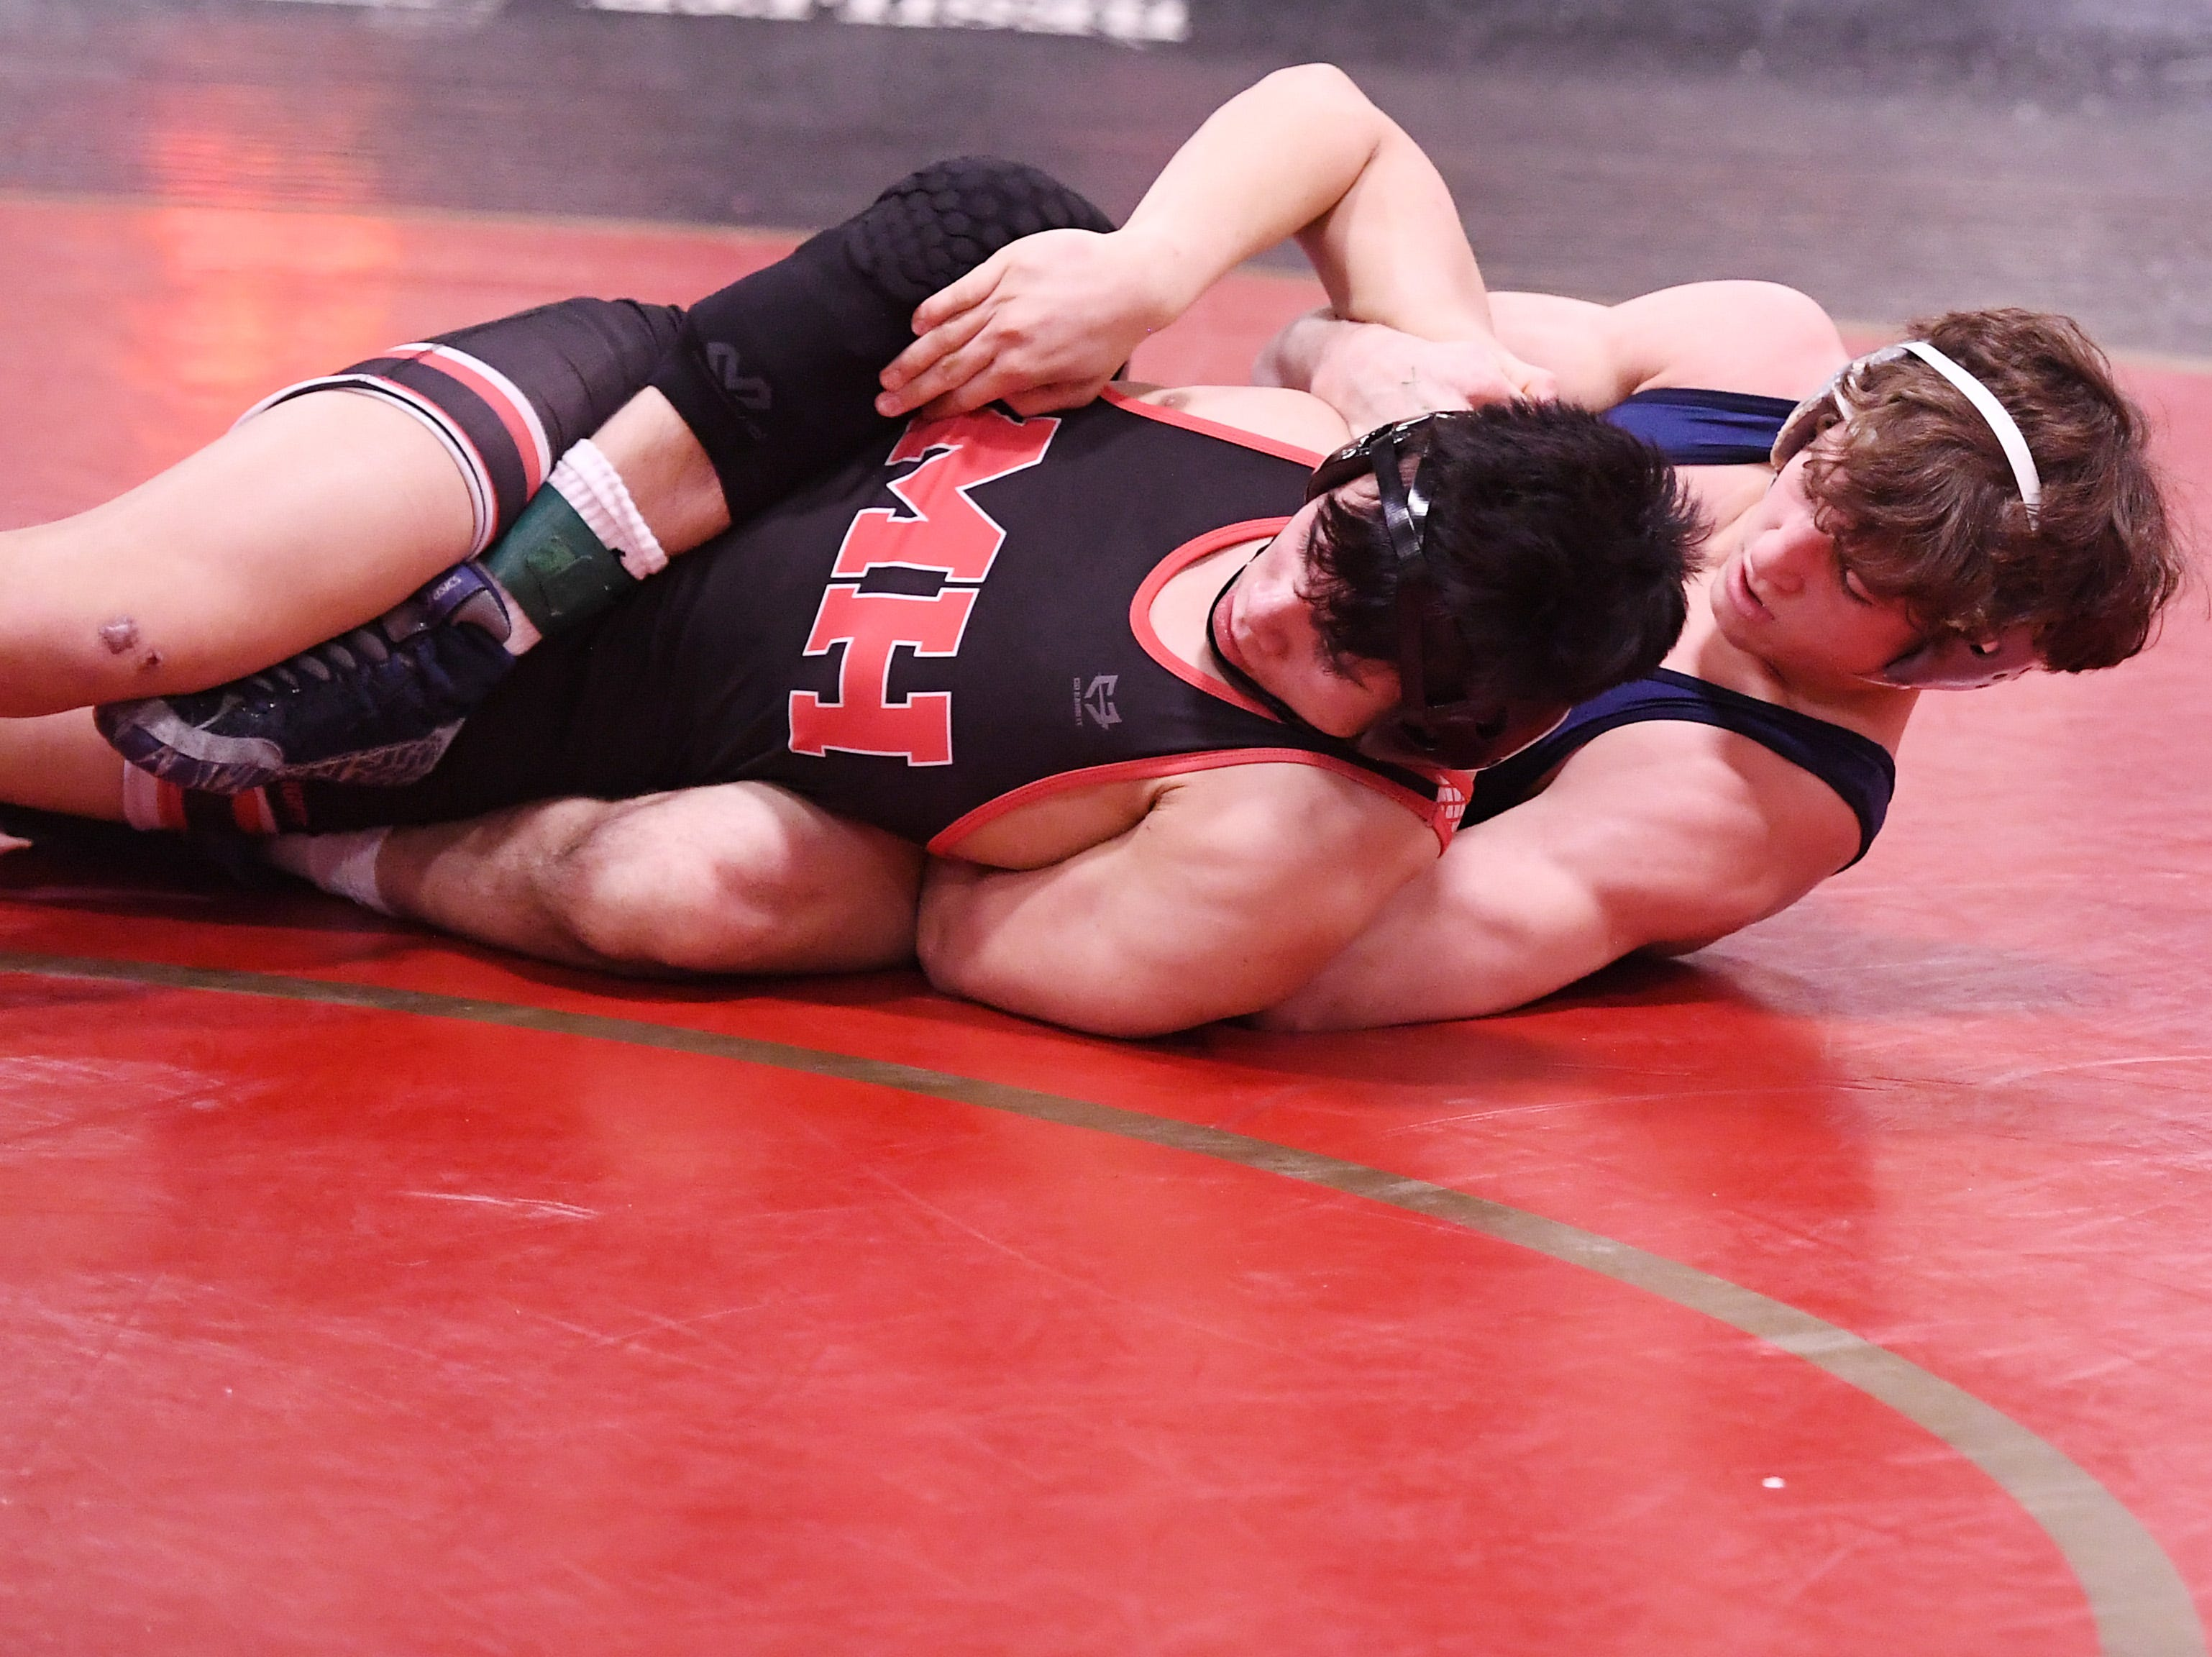 Morris County Tournament wrestling opening round at  Mount Olive High School on Friday, January 25, 2019. Justin LeMay of West Morris on his way to defeating Nate Bachelder of Morris Hills in their 152-pound match.